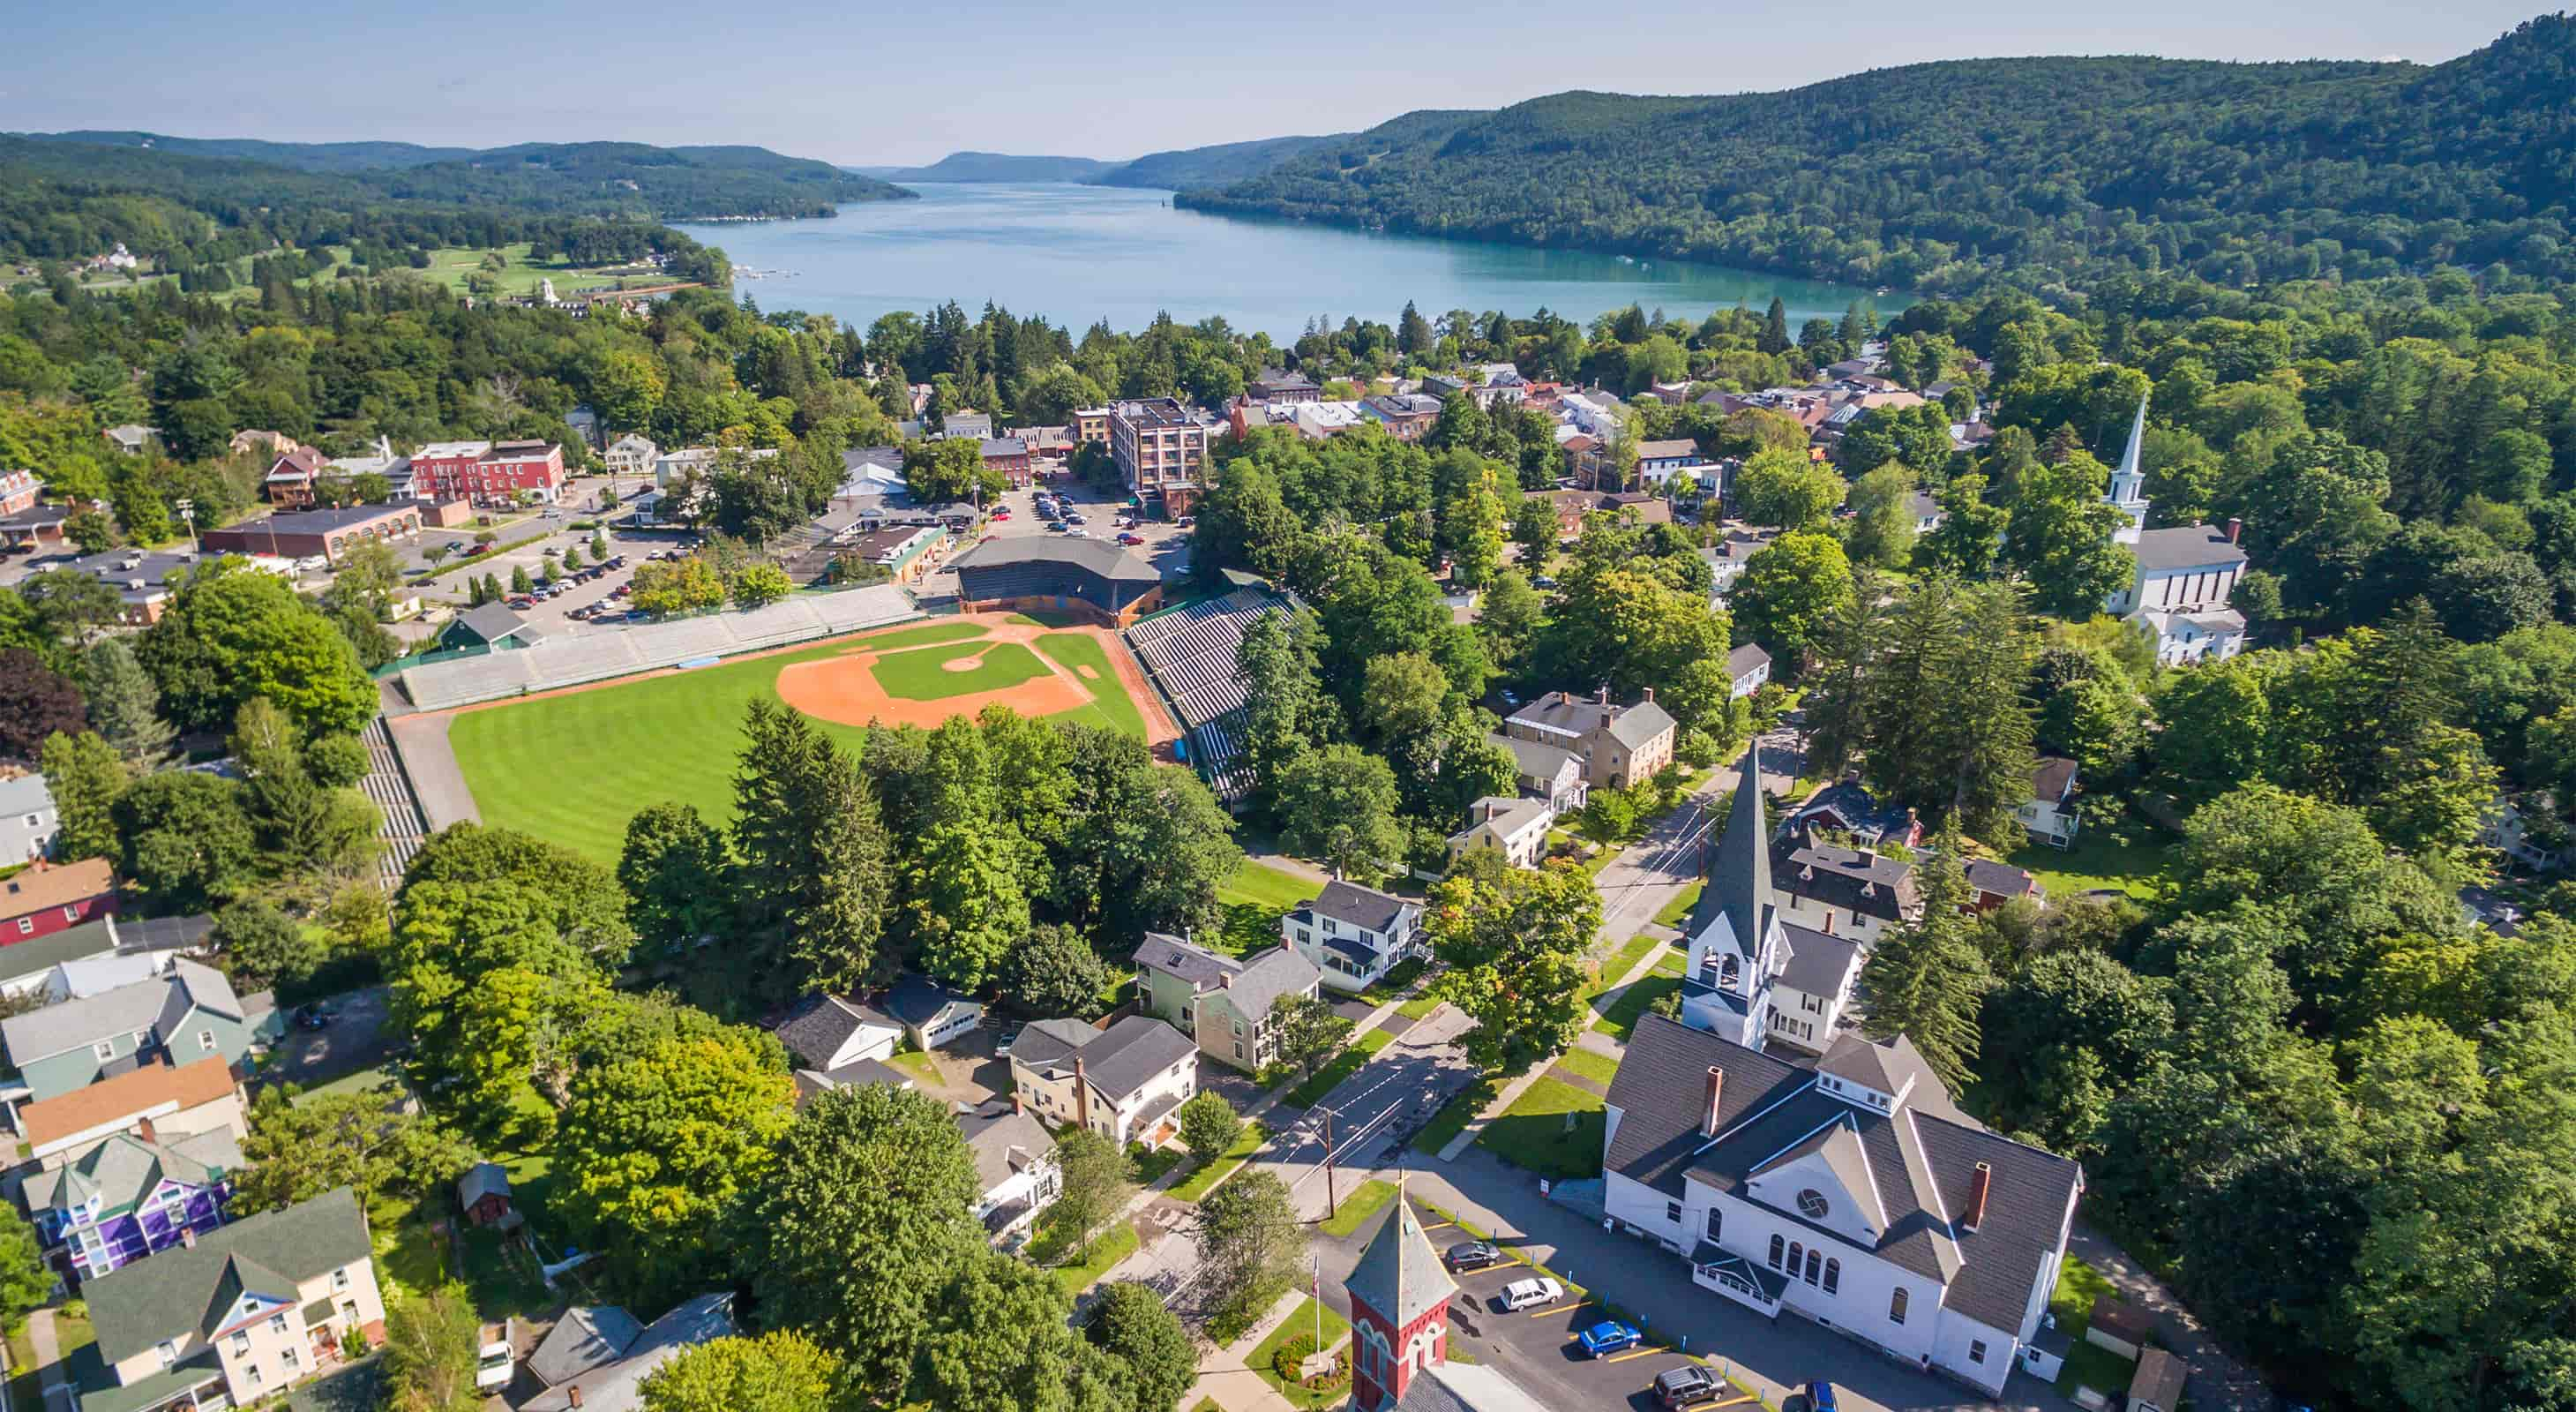 Aerial view of Cooperstown, NY